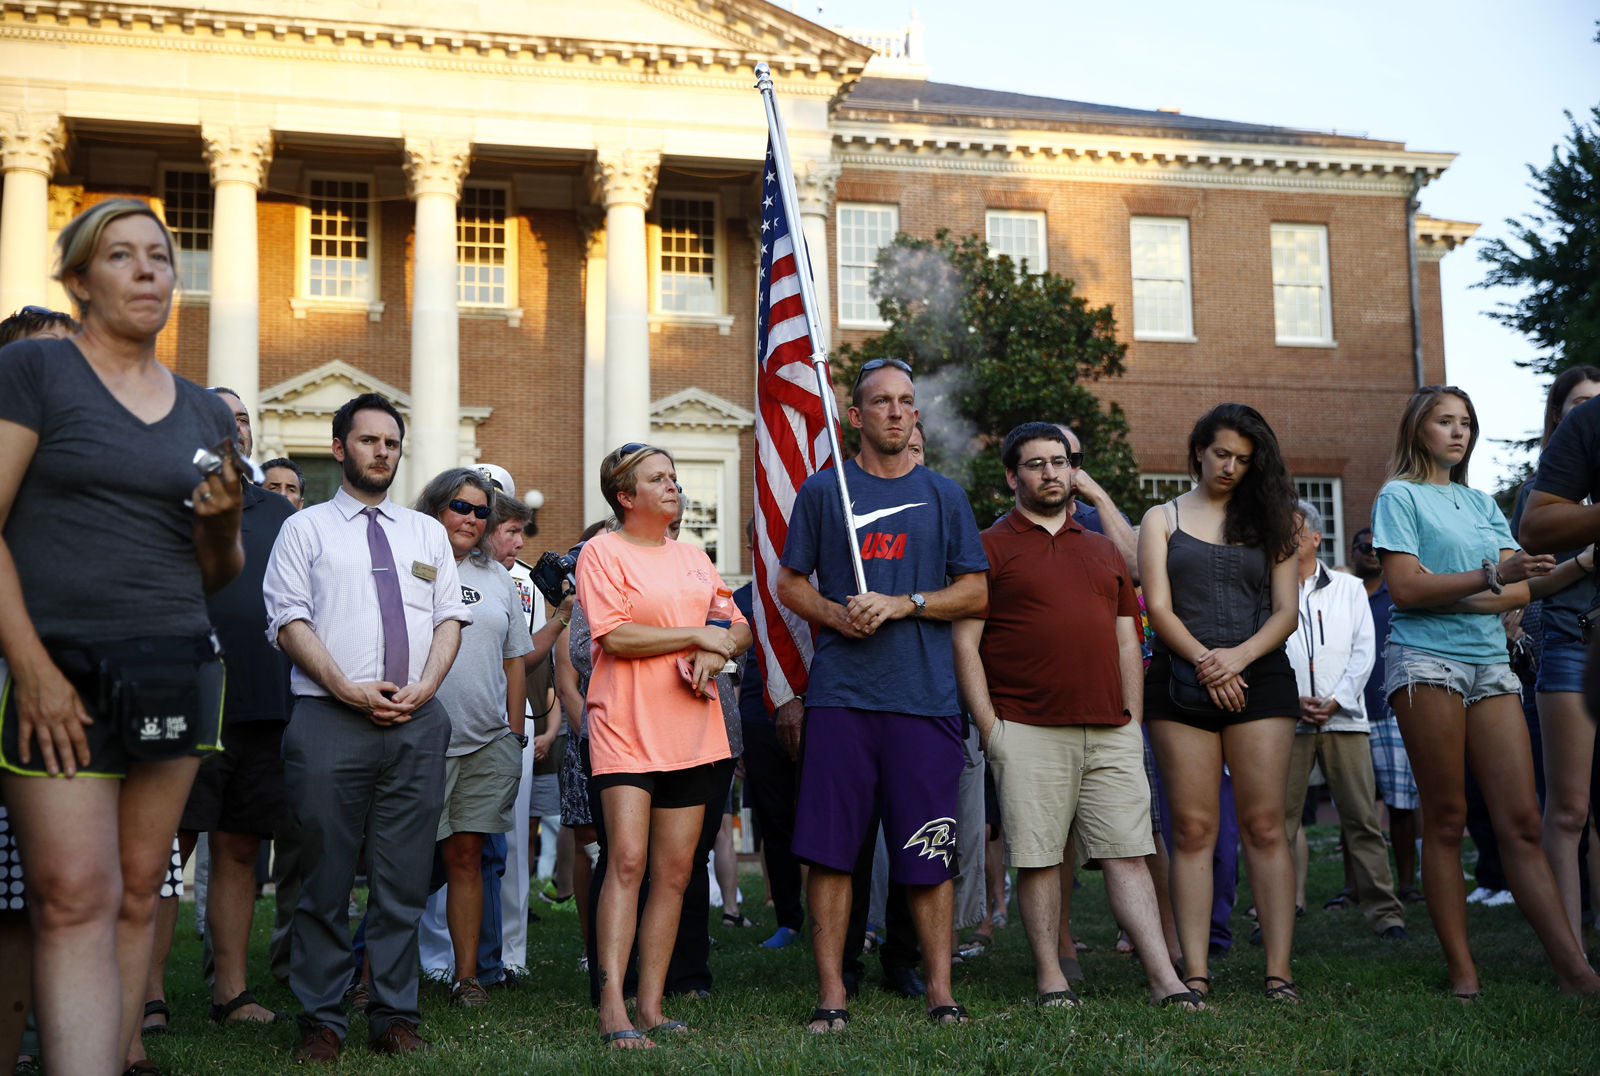 People gather for a vigil in response to a shooting at the Capital Gazette newsroom, Friday, June 29, 2018, in front of the Maryland State House in Annapolis, Md. Prosecutors say Jarrod W. Ramos opened fire Thursday in the newsroom. (AP Photo/Patrick Semansky)